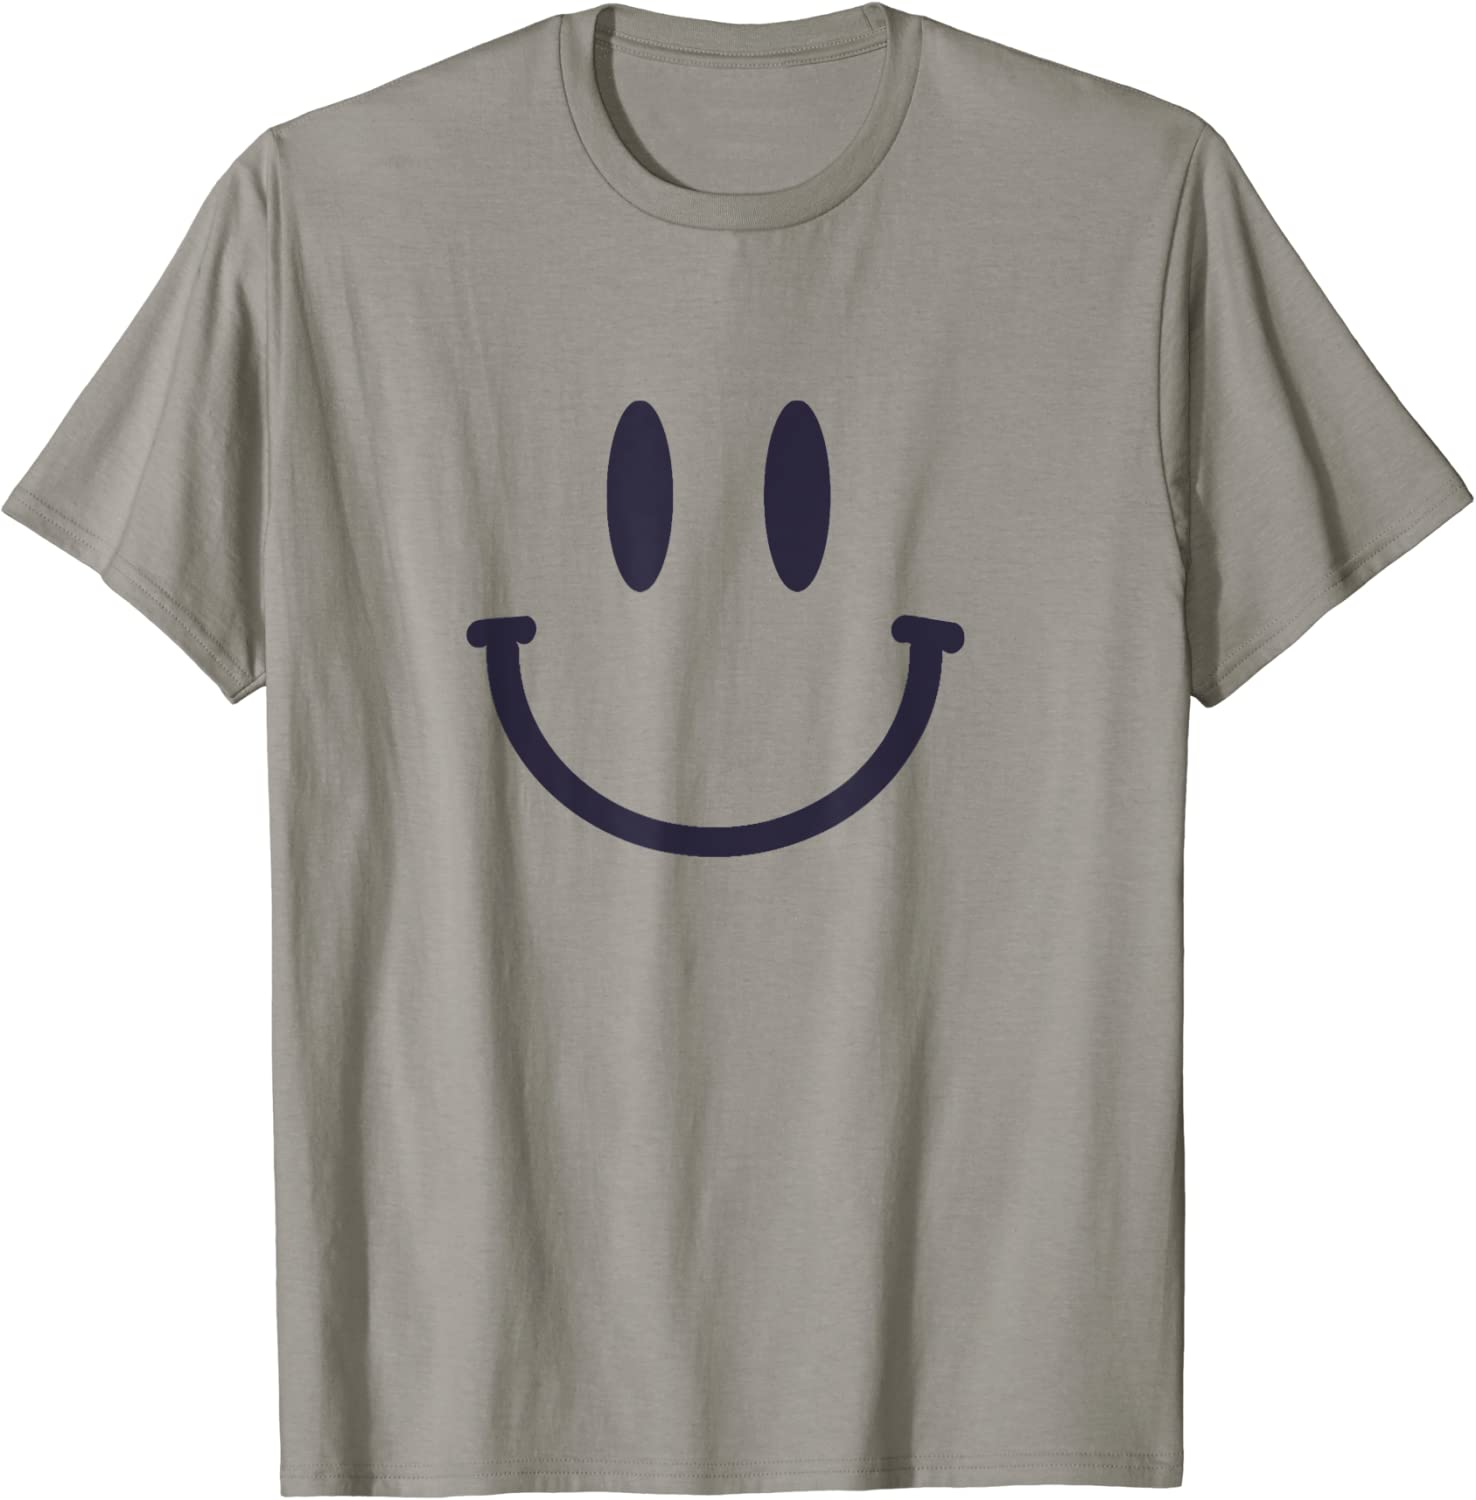 Special sale item Smiley Face Cute Positive Motivational Happy Smile T-Shirt Brand new